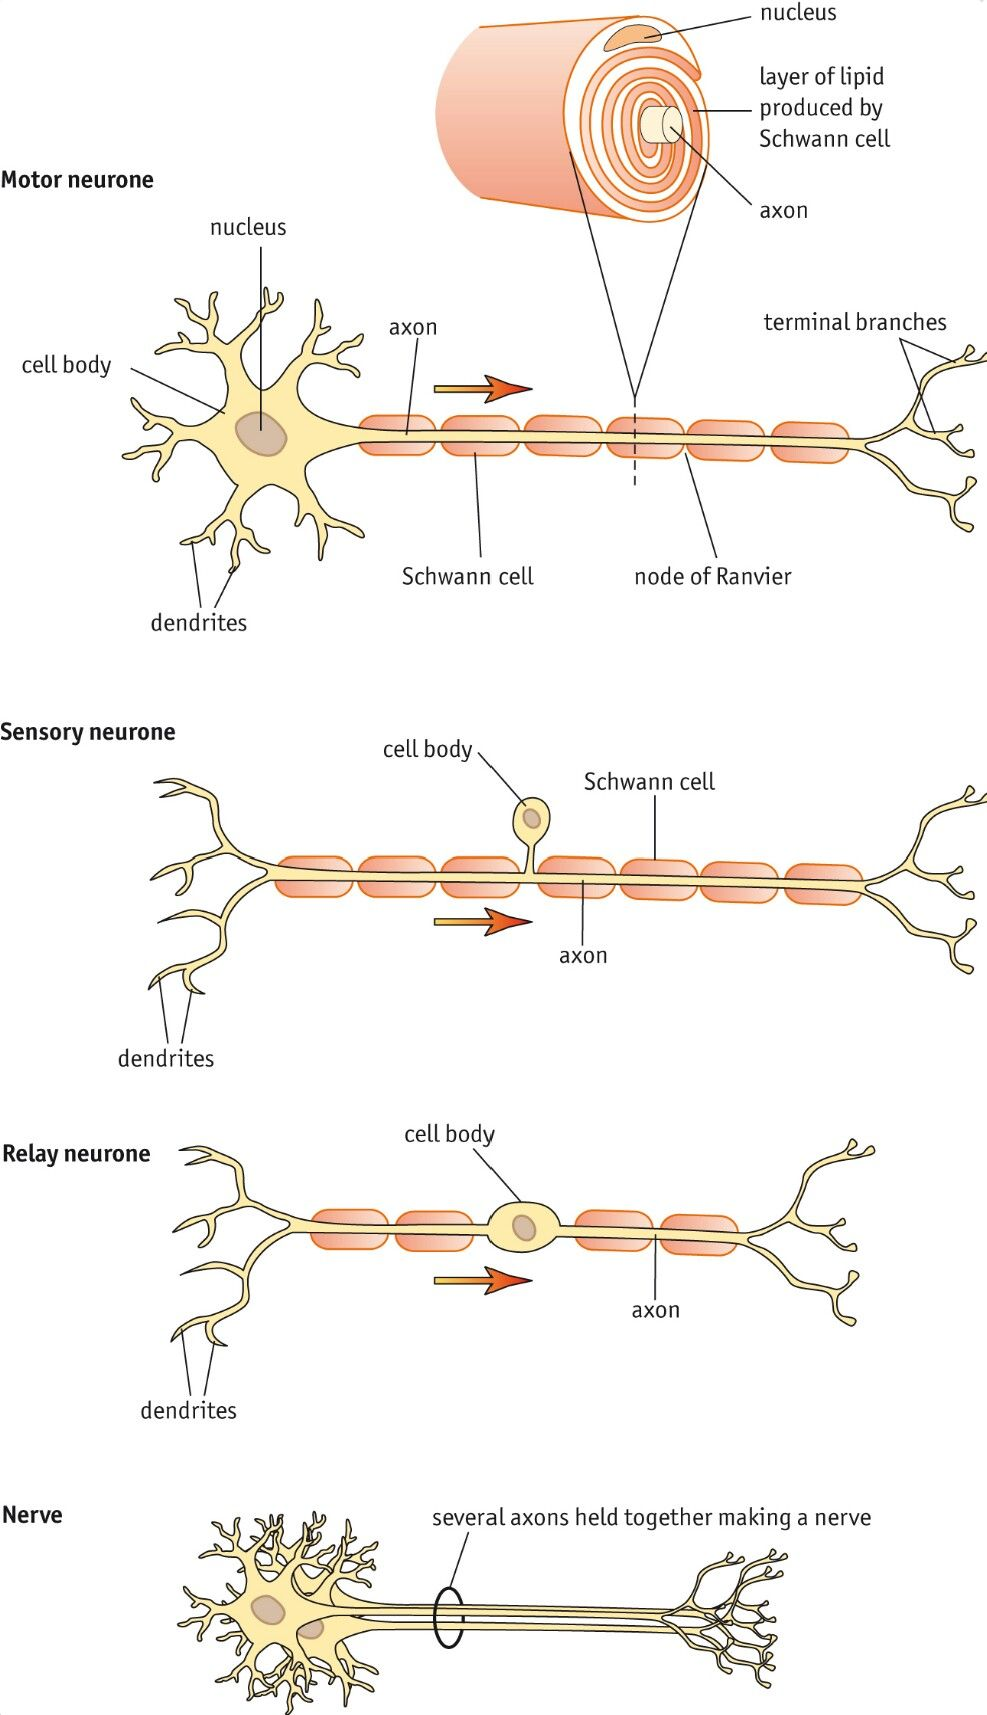 Nerve Cell Structure and Schwann Cells Nerve cell